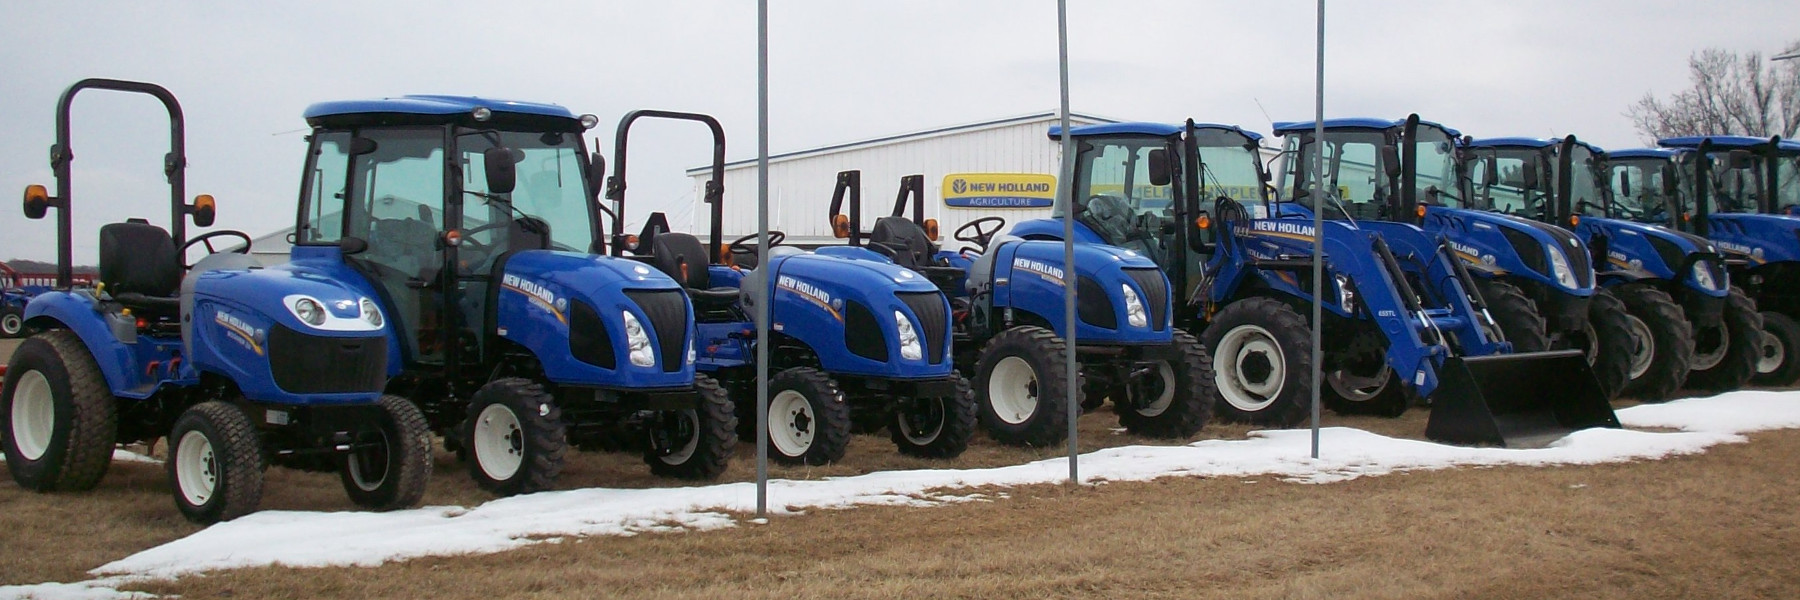 New Holland Tractors | Melrose Implement